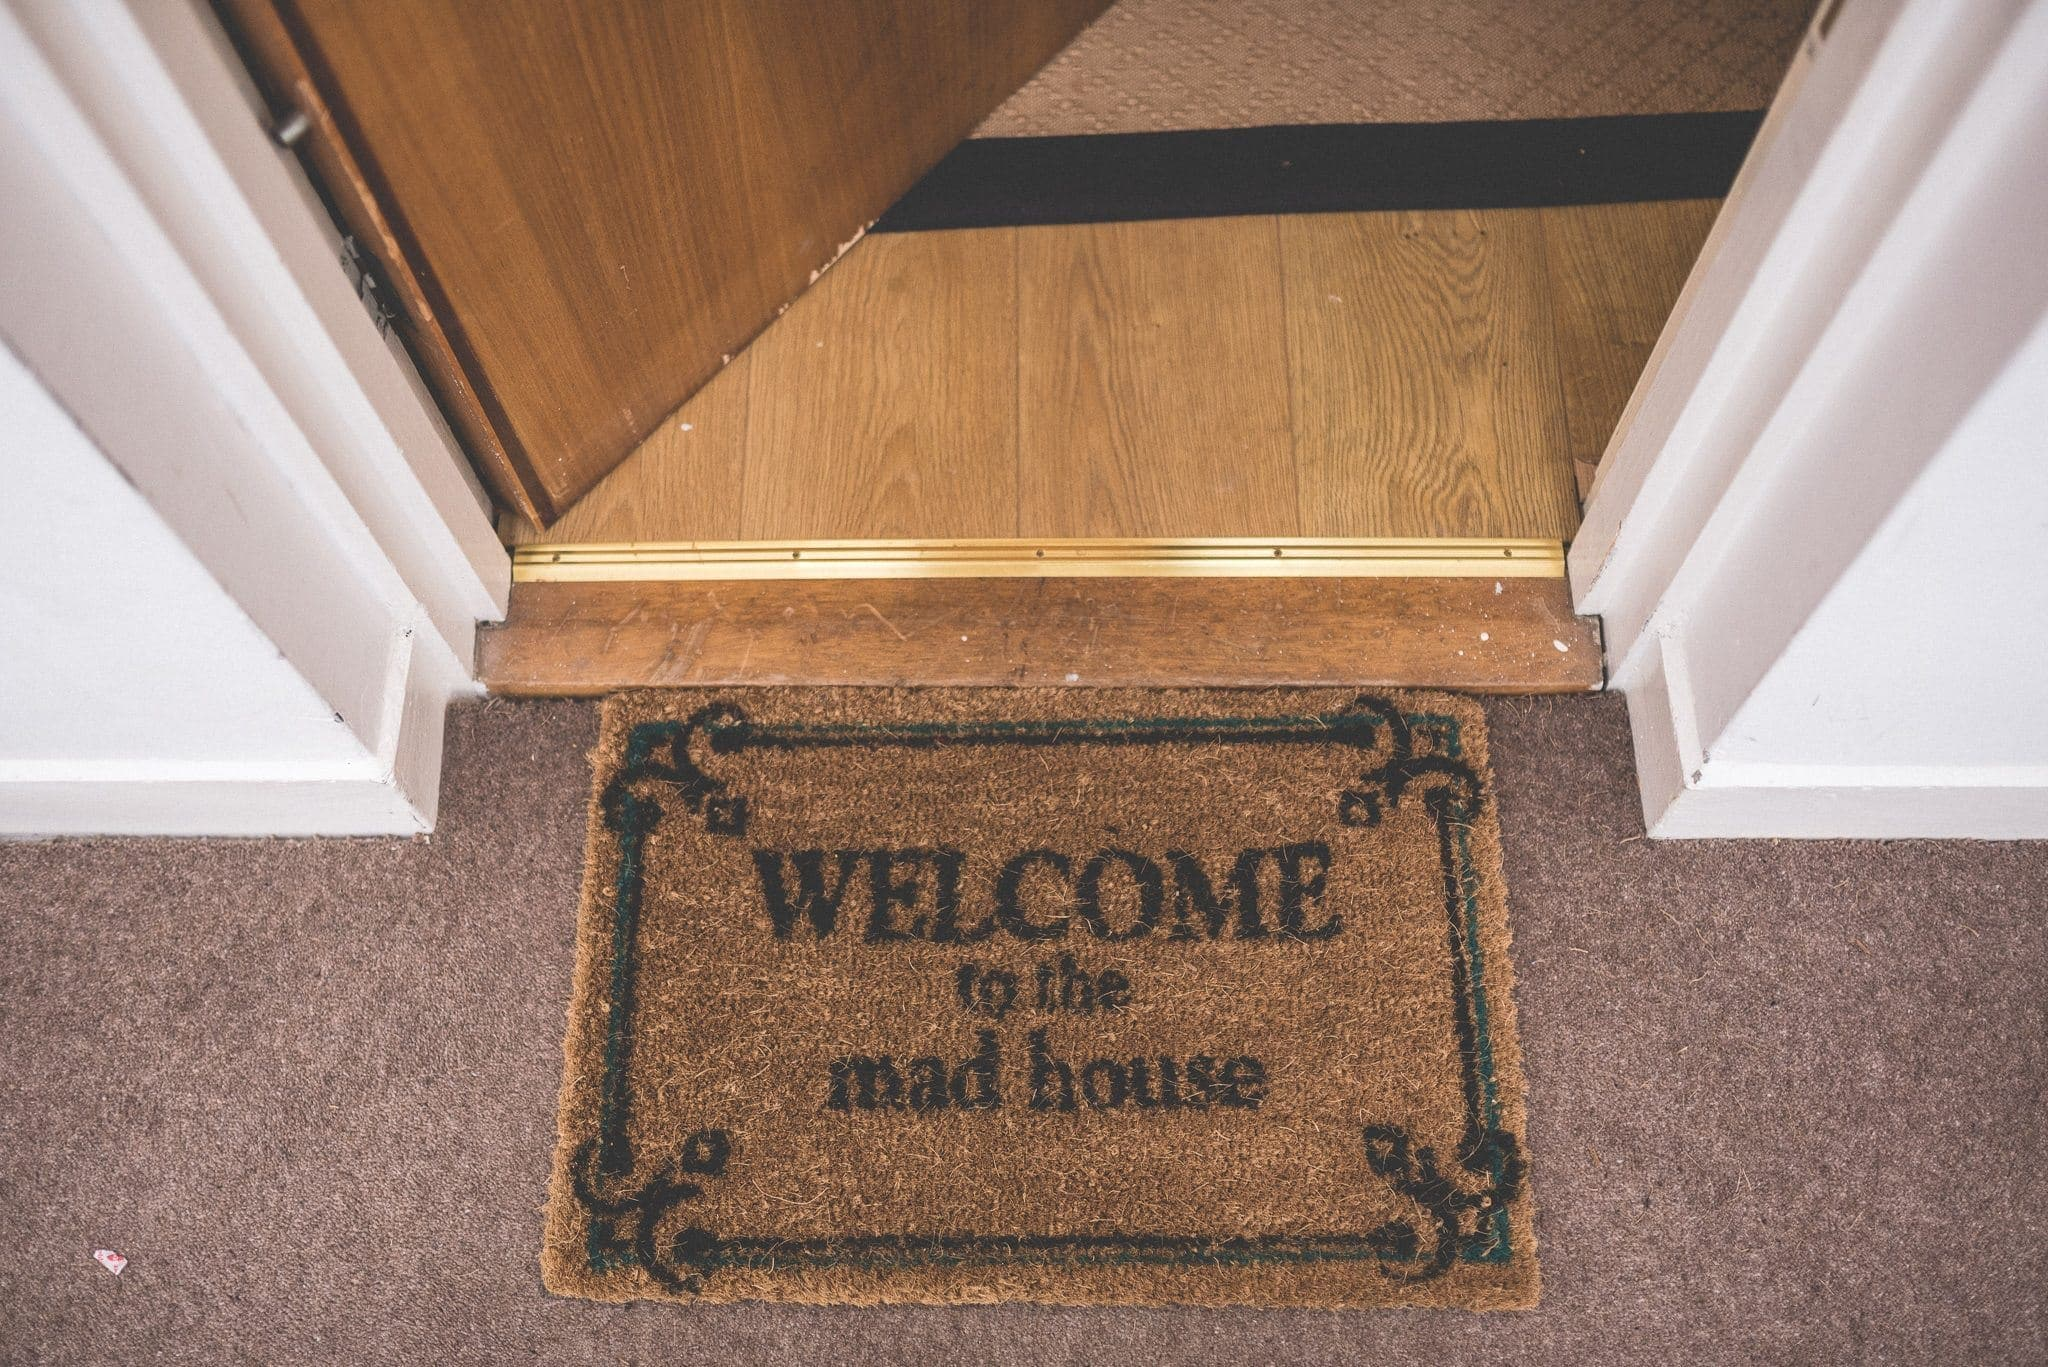 Door mat saying welcome to the mad house